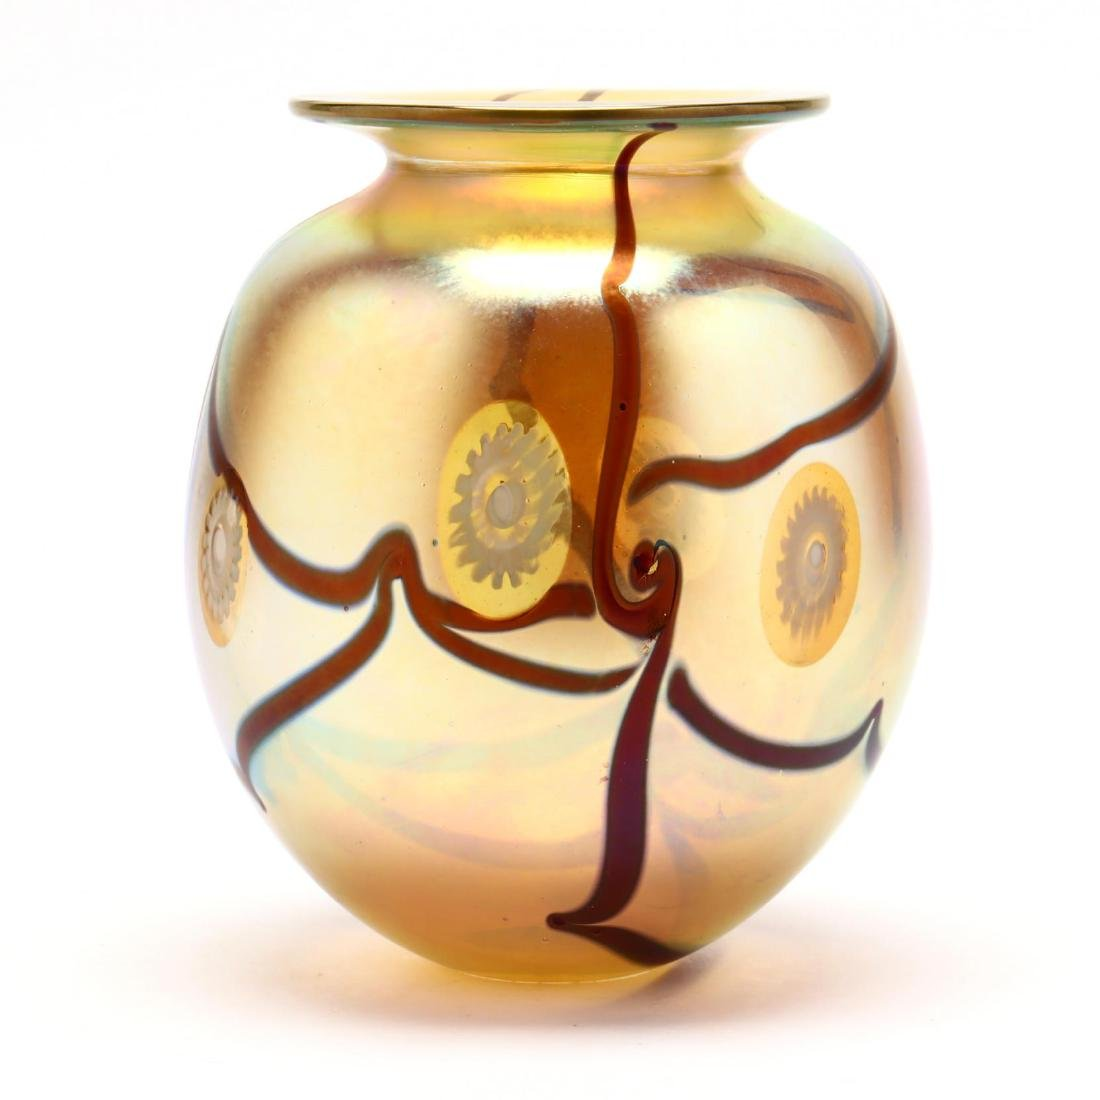 Eickholt Art Glass Vase - 4